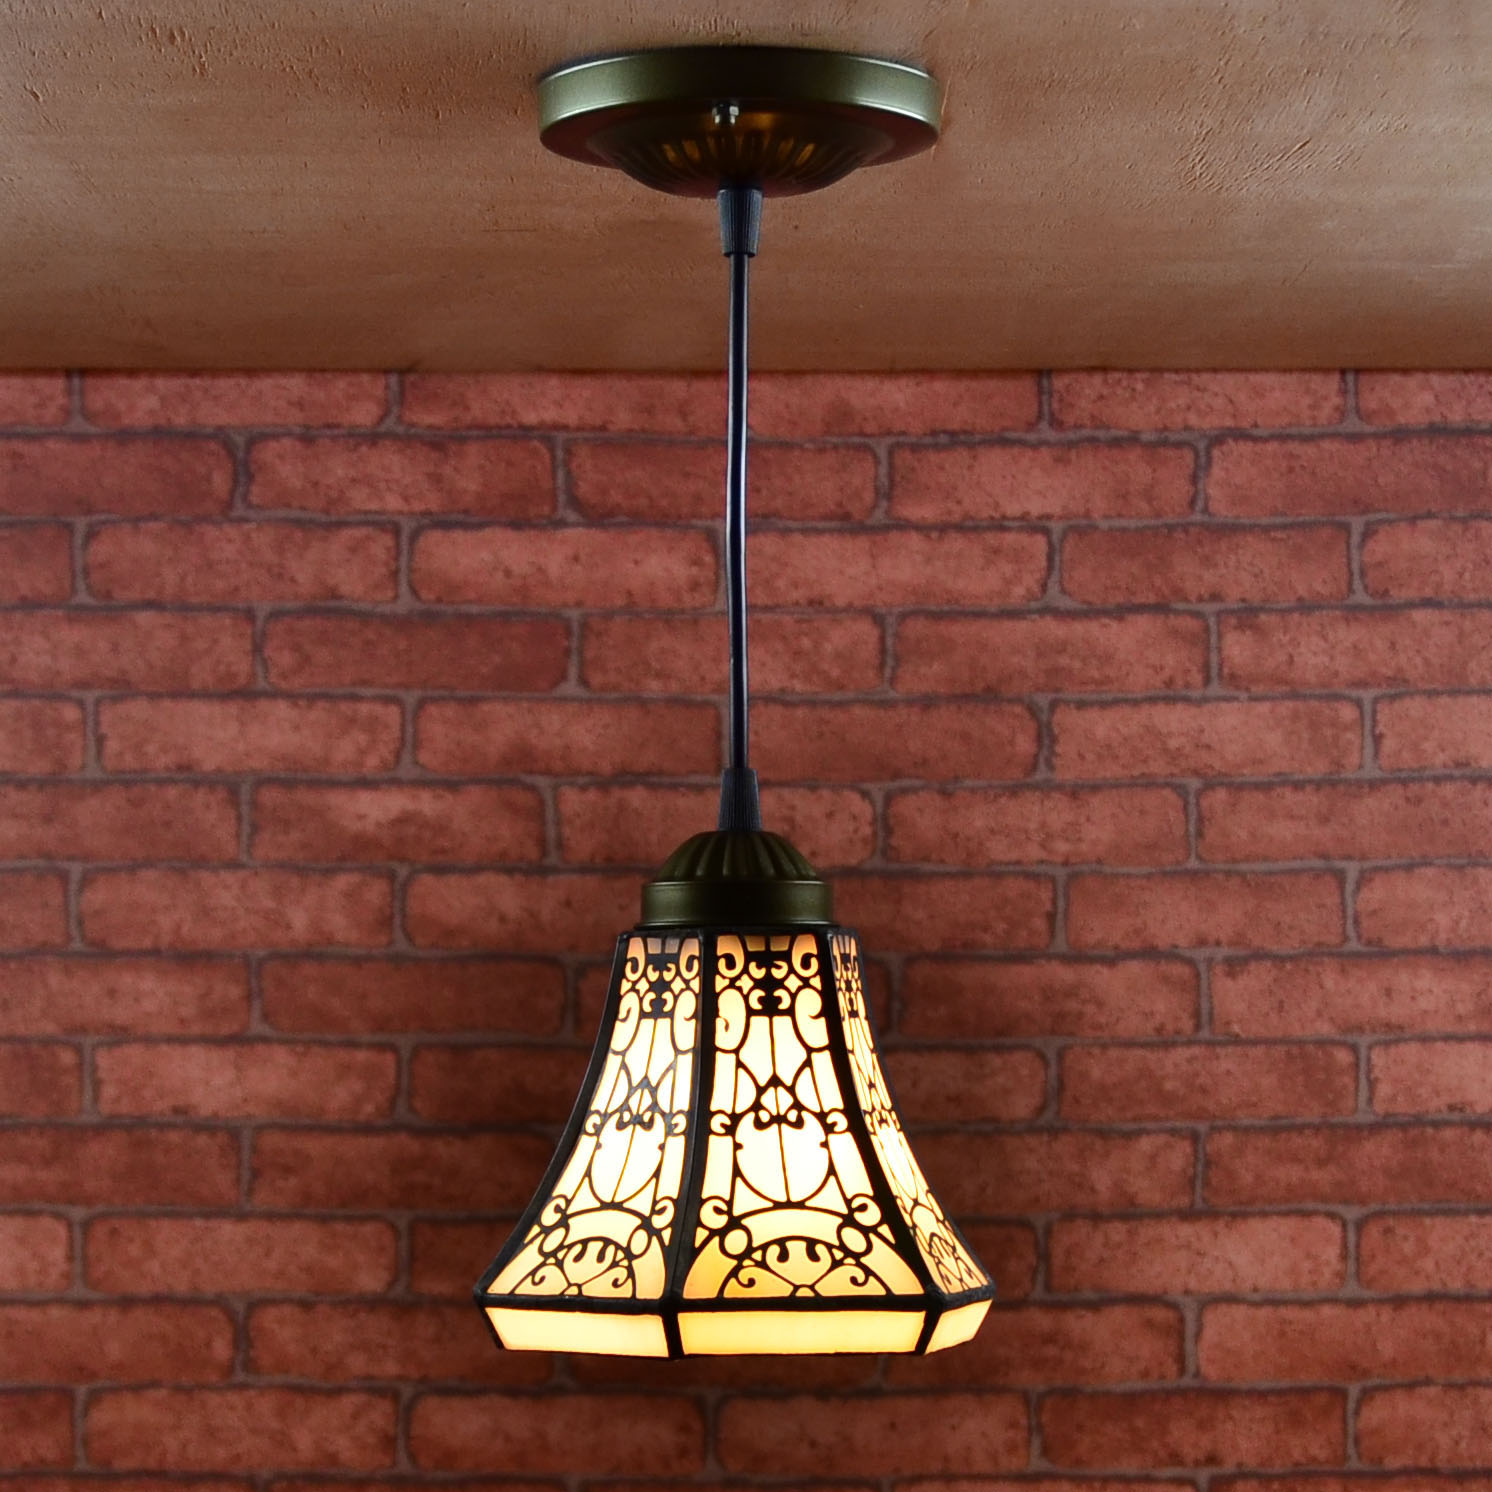 European tiffany style retro  stained glass pendant light balcony aisle porch corridor small bathroom hanging lamp fumat stained glass ceiling lamp european church corridor magnolia etched glass indoor light fixtures for balcony front porch